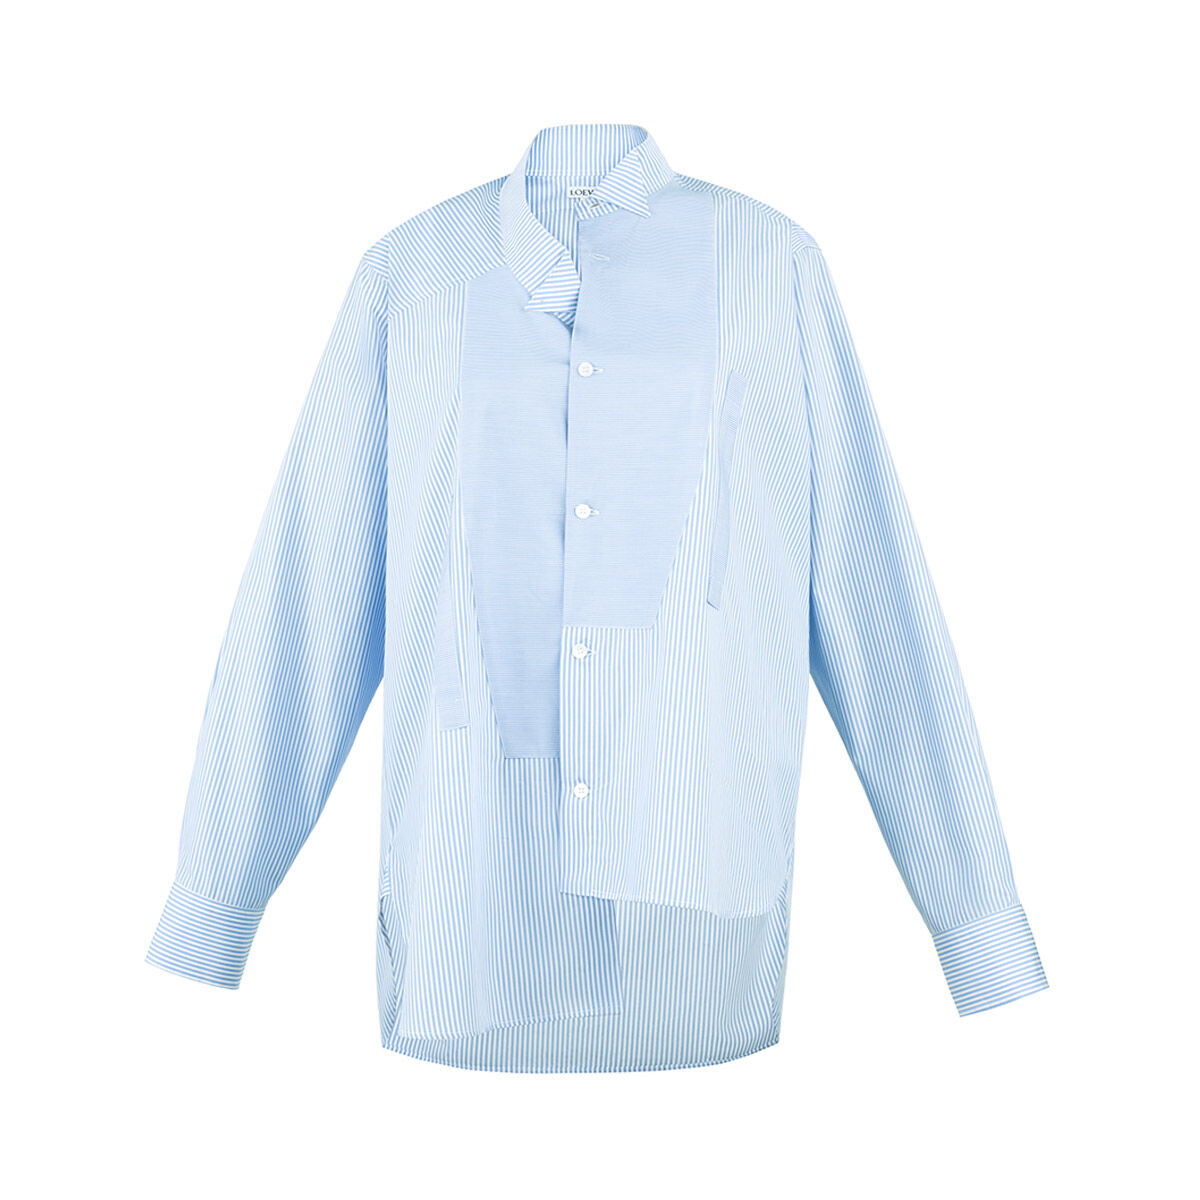 Cheap 100% Authentic Free Shipping Limited Edition White and blue asymmetrical shirt Loewe Fake Cheap Price Ml0JP